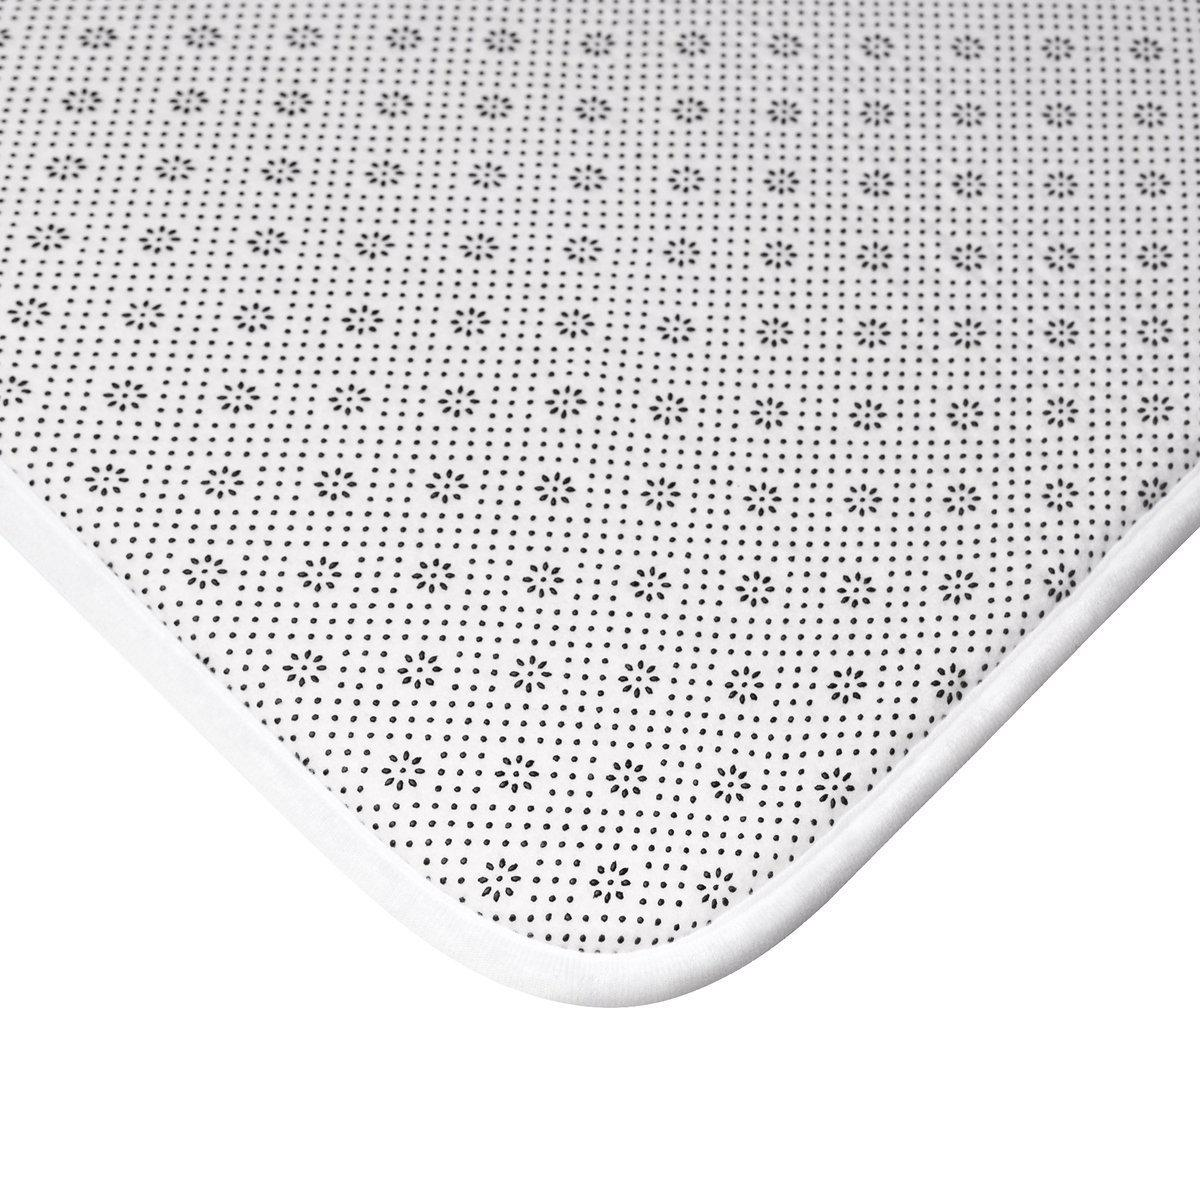 Contemporary striped anti-slip memory foam Bath Mat-Bath - Bath Linens - Bath Mats-Maison d'Elite-Très Elite